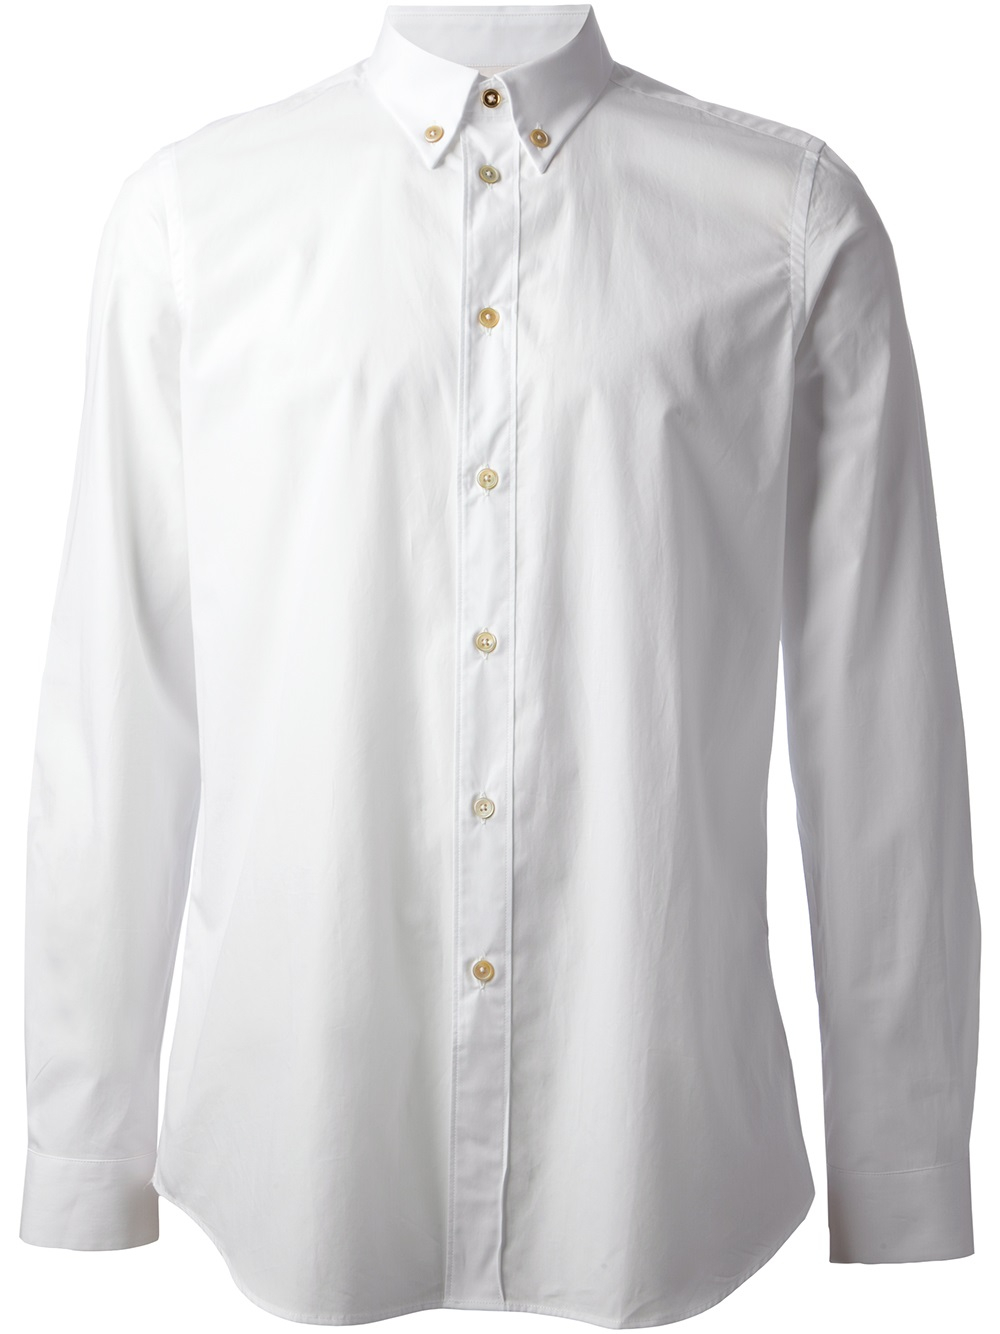 Paul smith Button Down Shirt in White for Men | Lyst